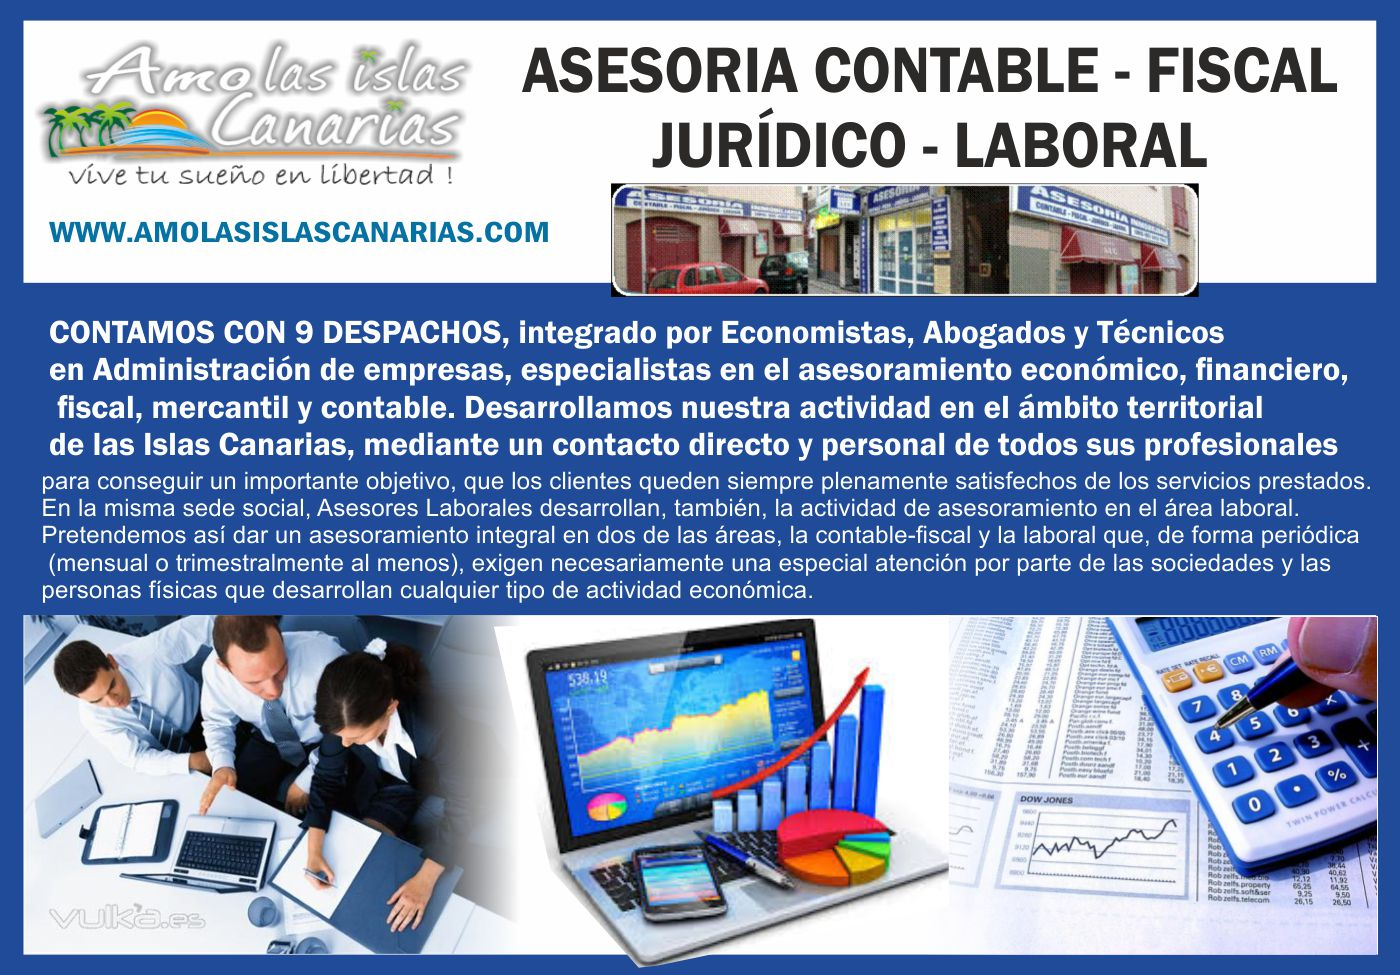 2 AREAS asesoria